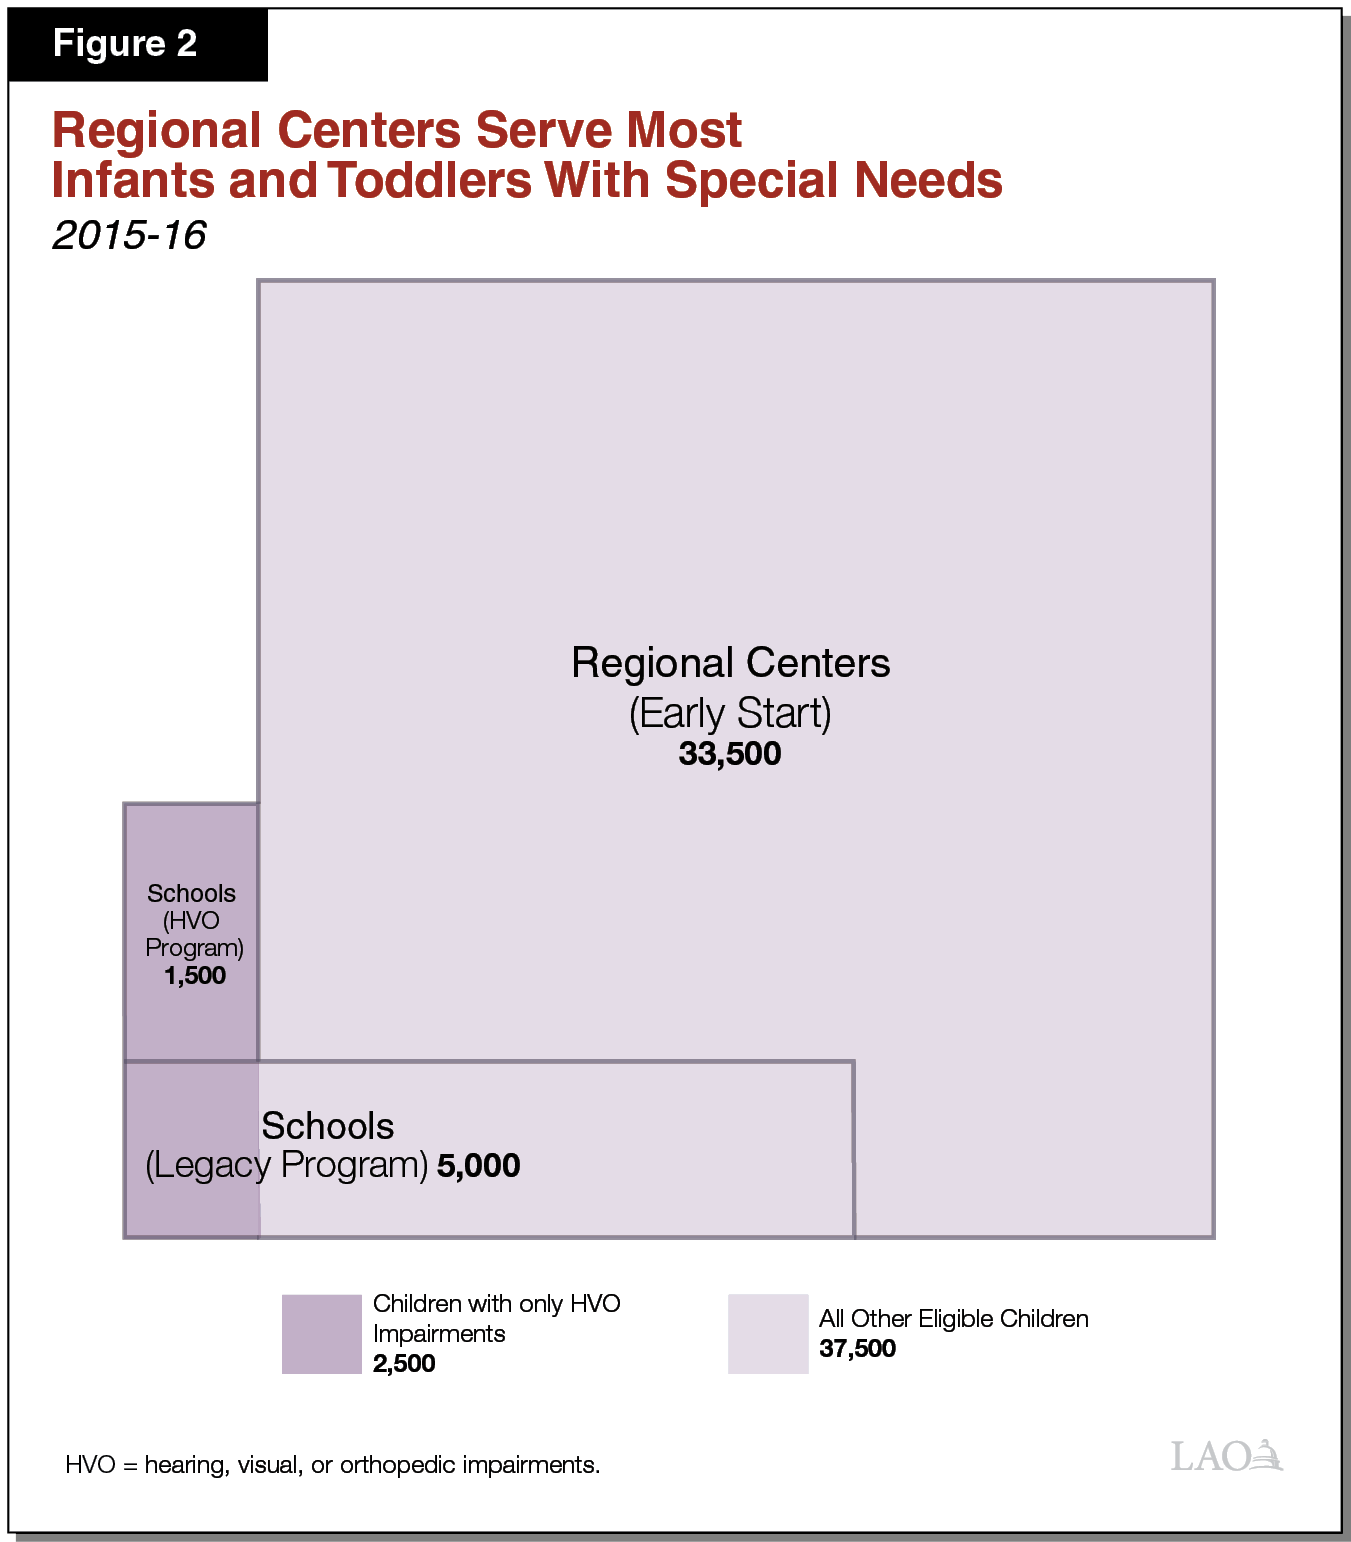 Figure 2 - Regional Centers Serve Most Infants Toddlers With Special Needs